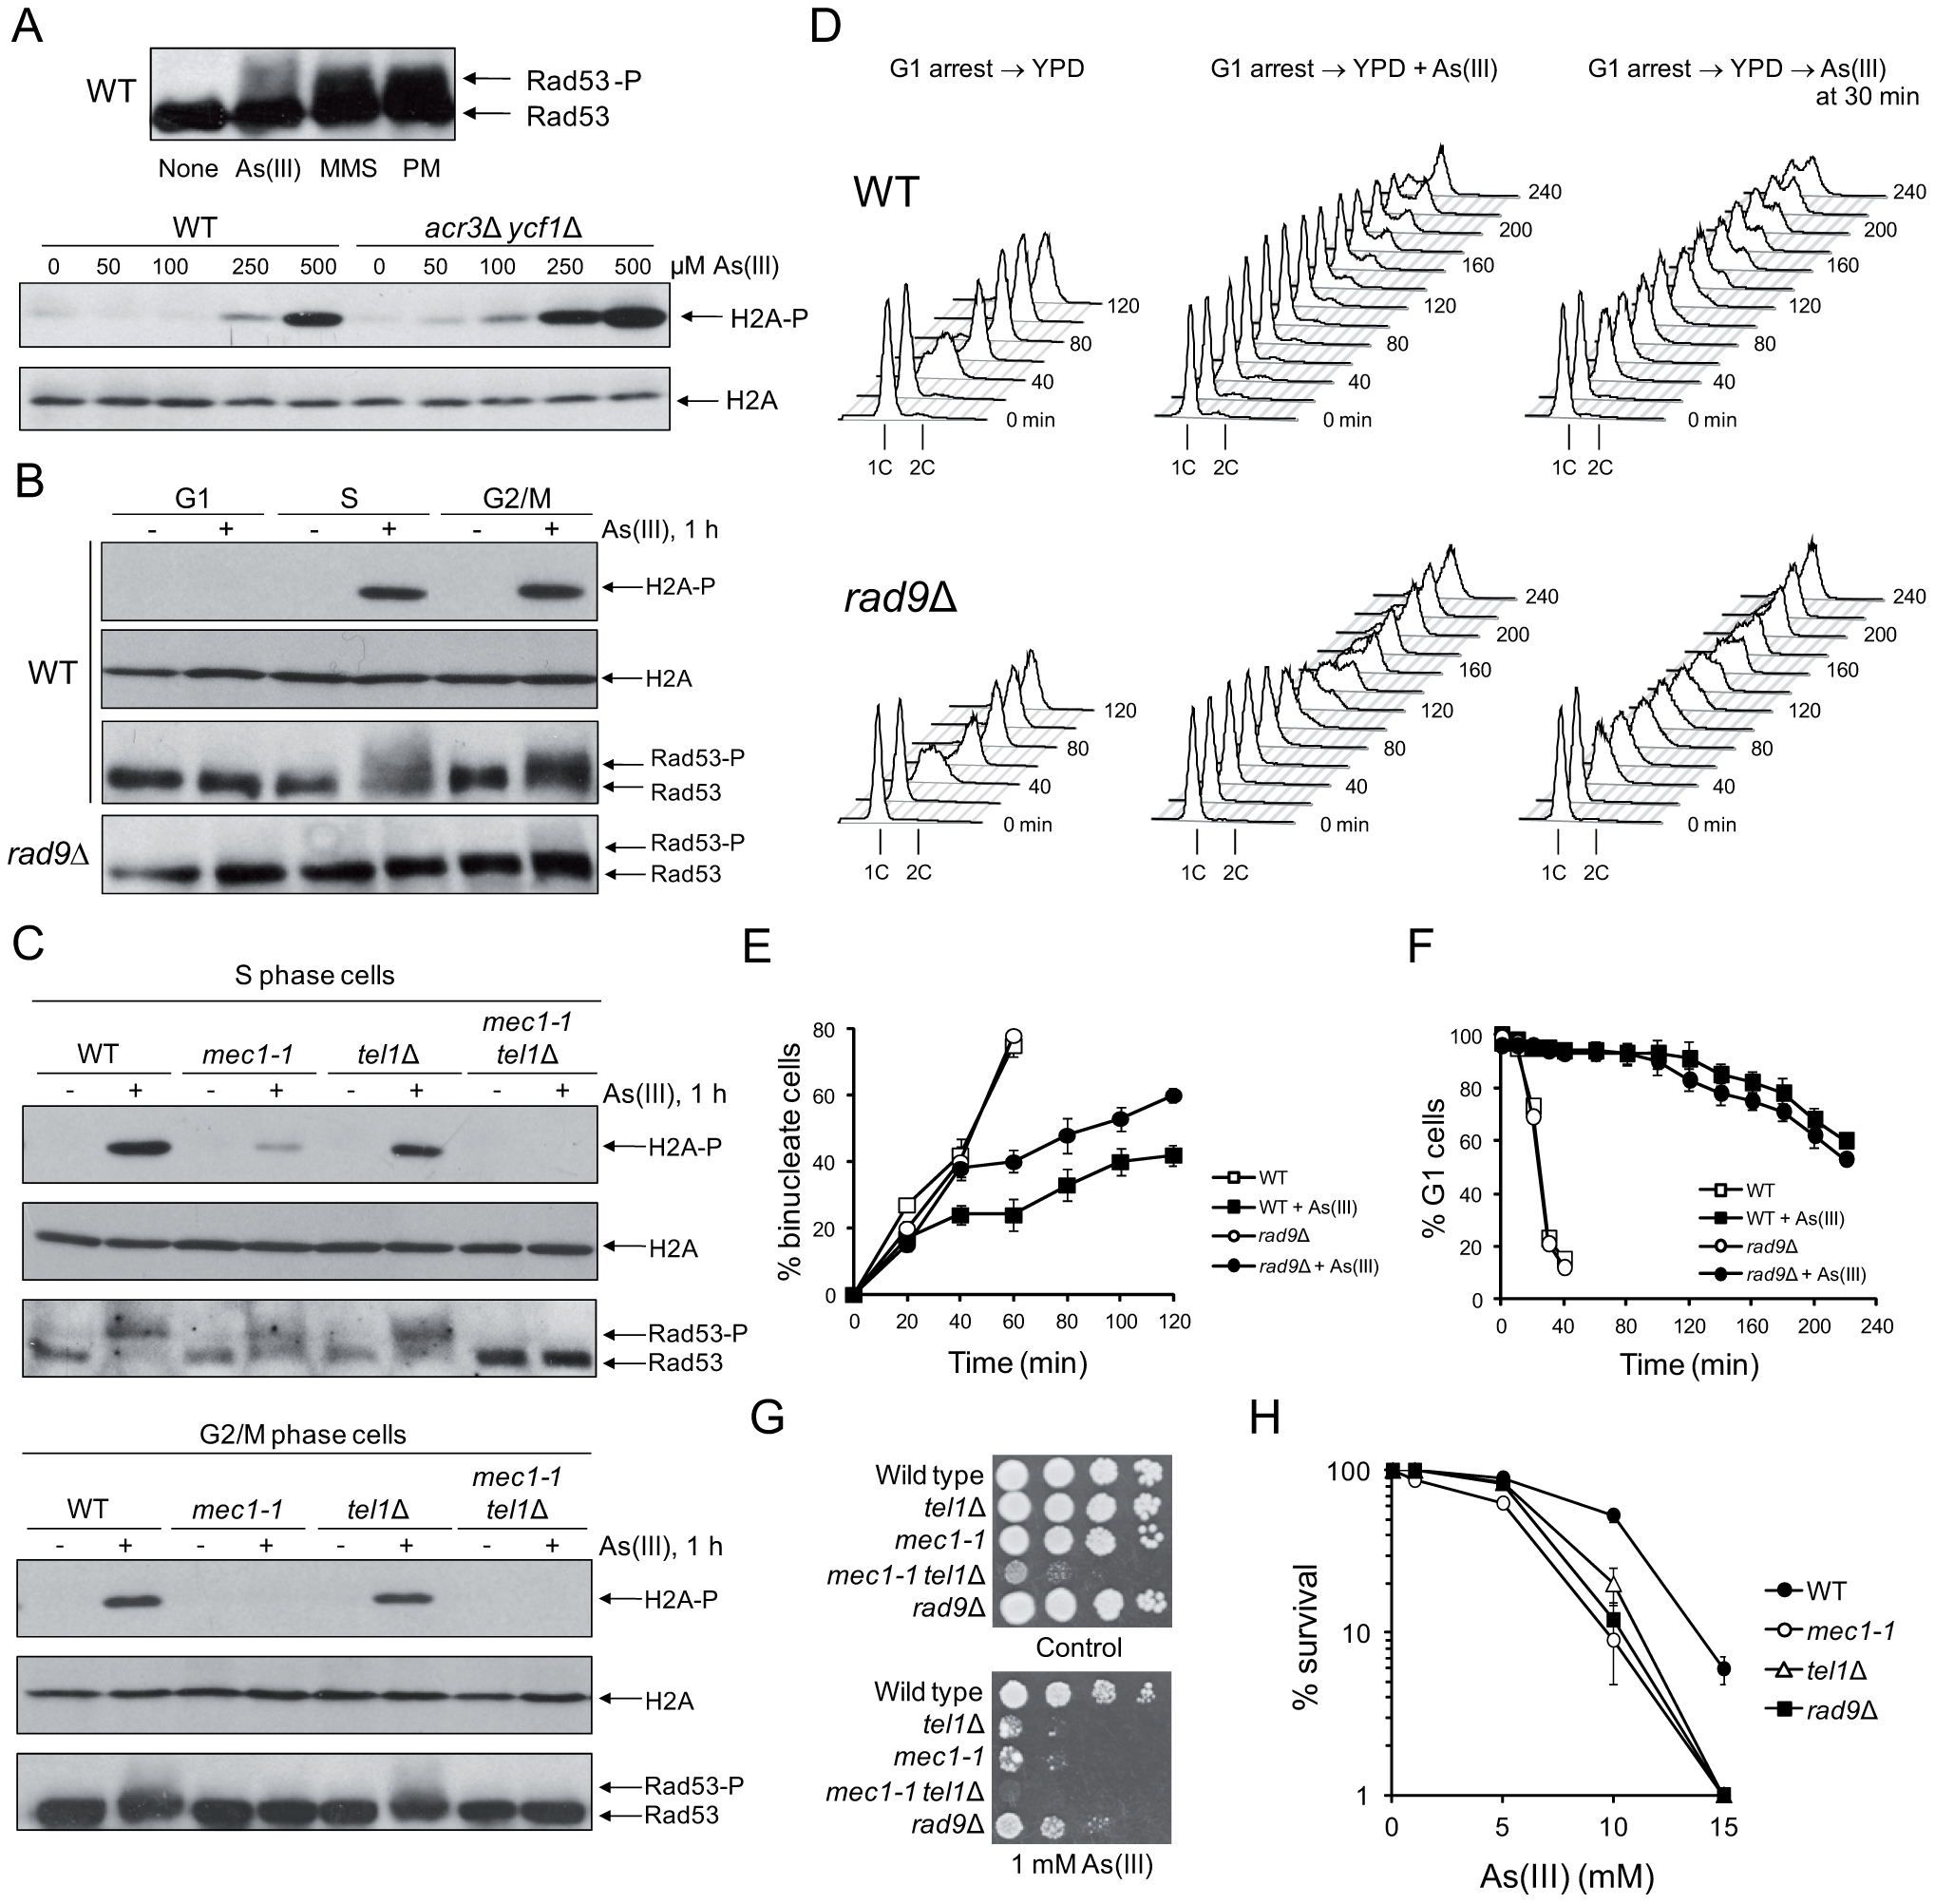 Cell cycle phase-dependent activation of DNA damage checkpoints by As(III) in budding yeast.